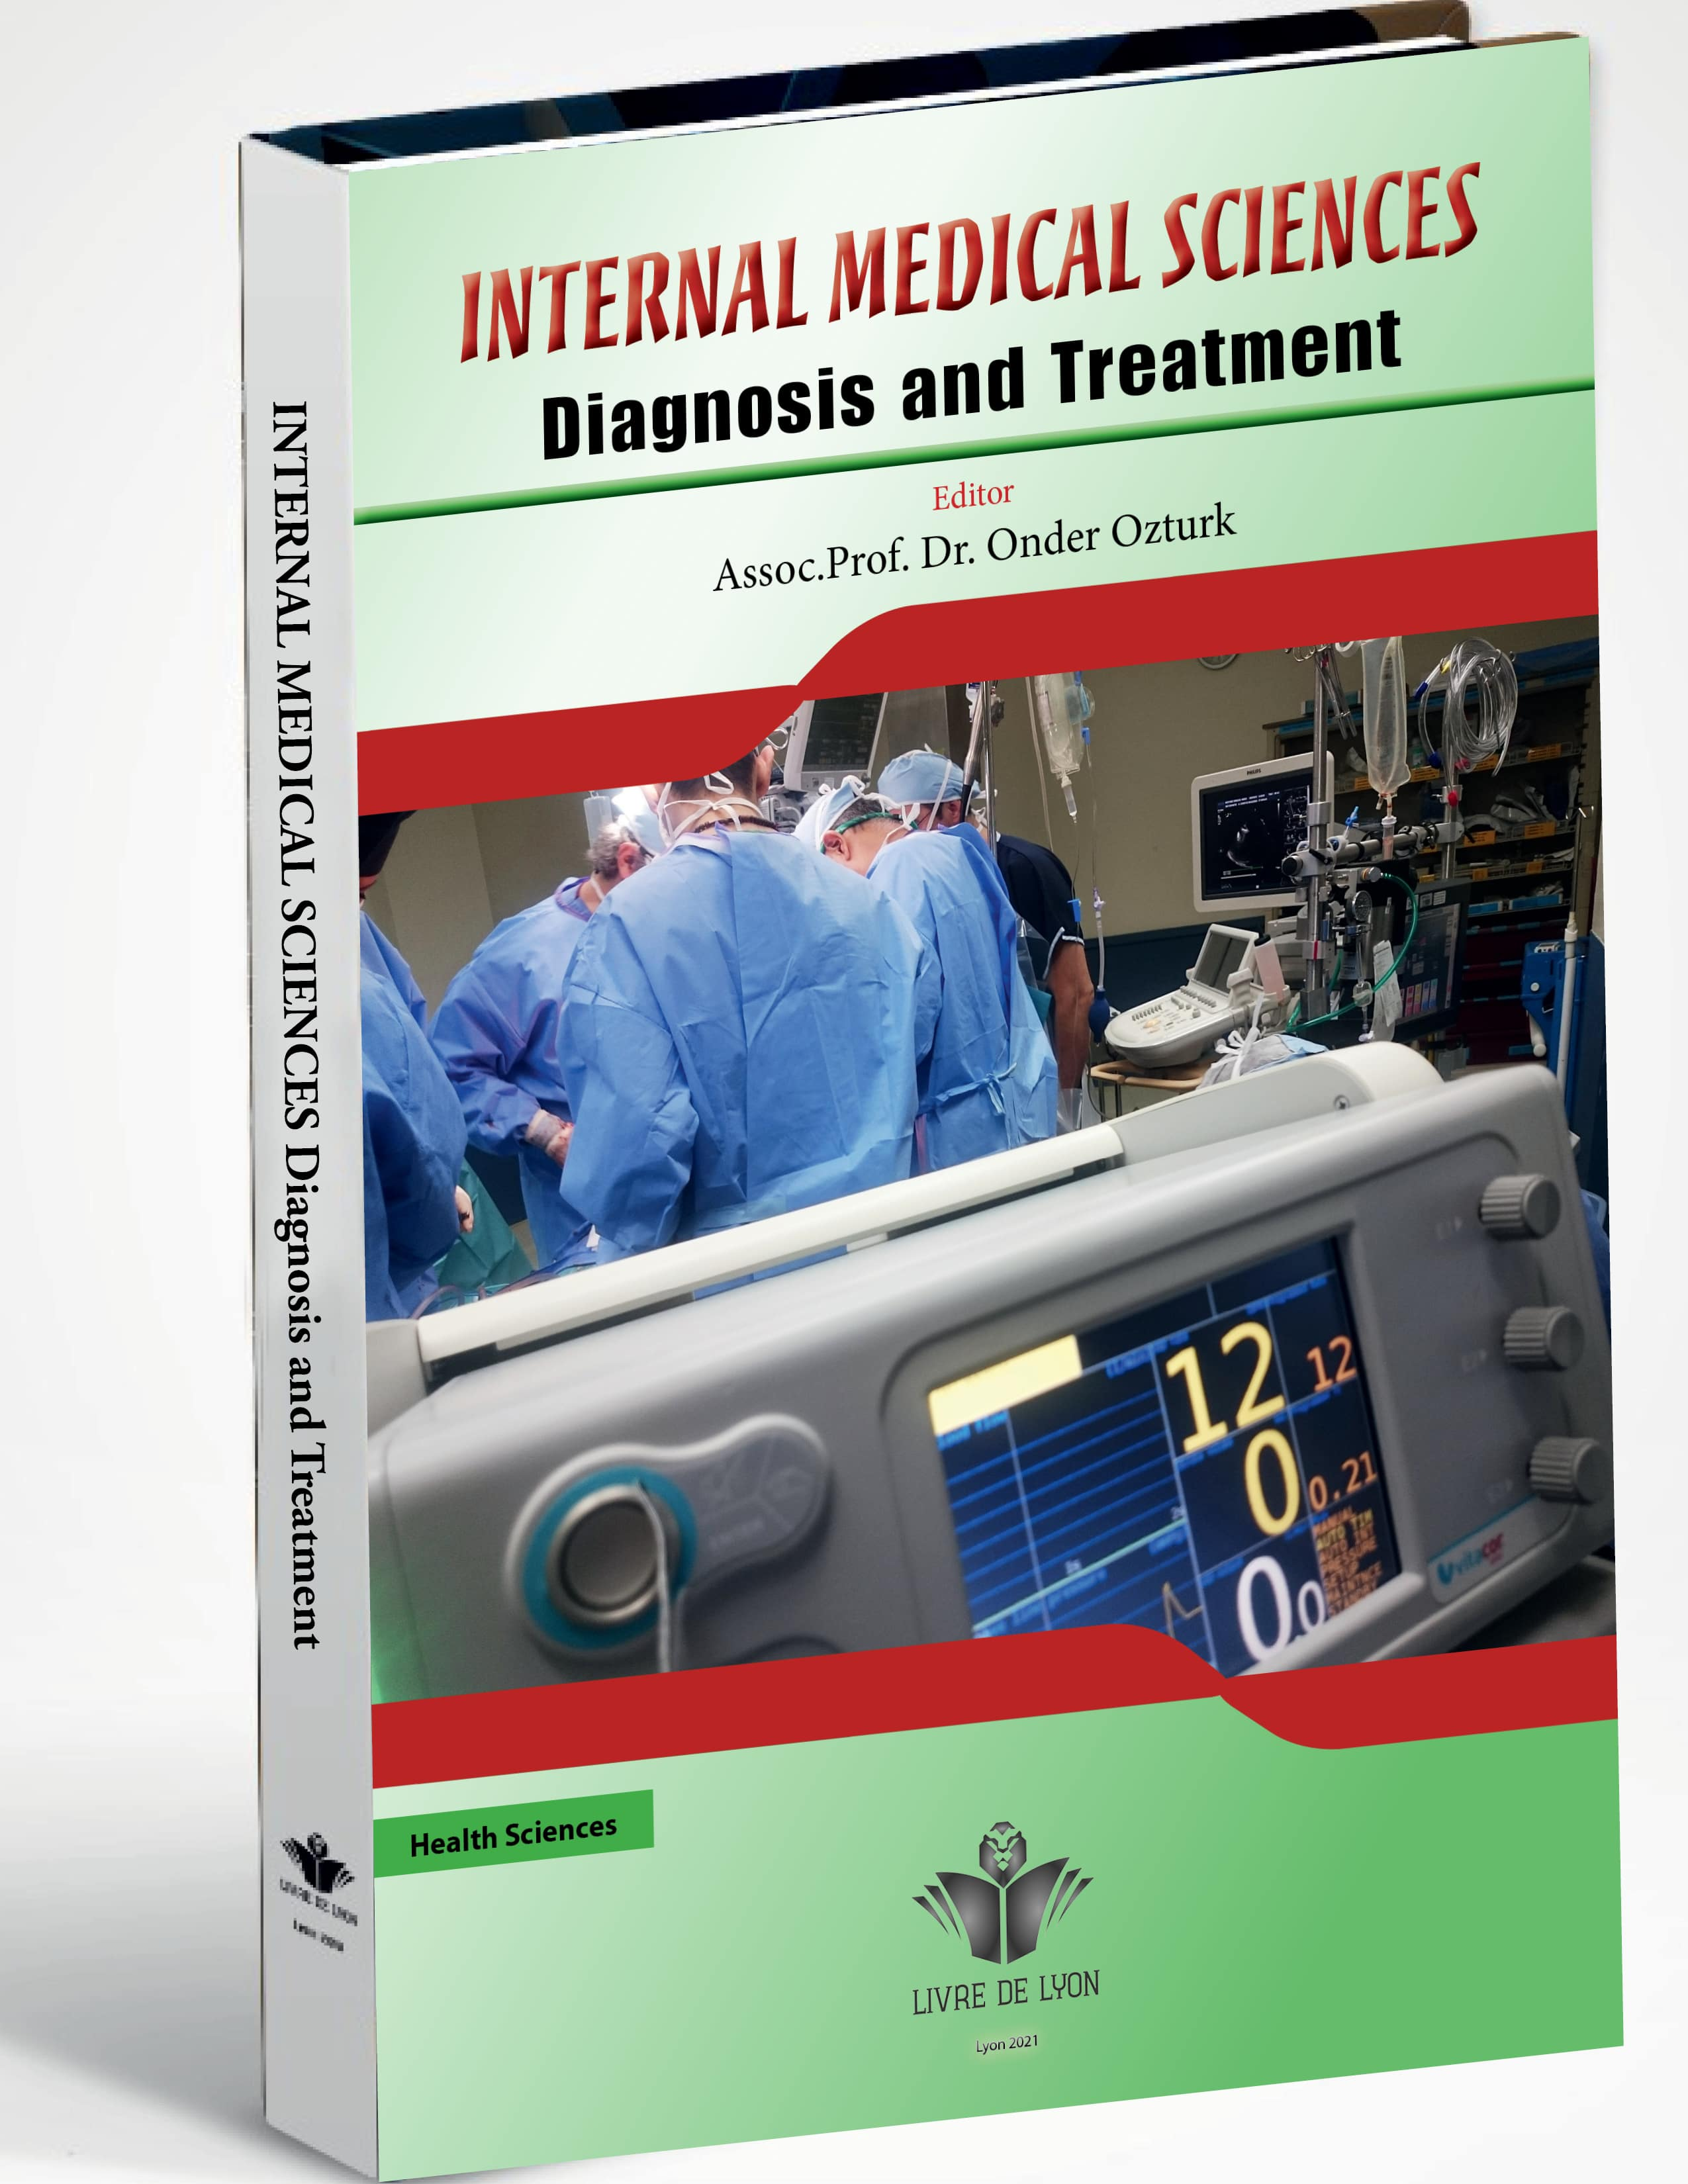 Internal Medical Sciences Diagnosis and Treatment